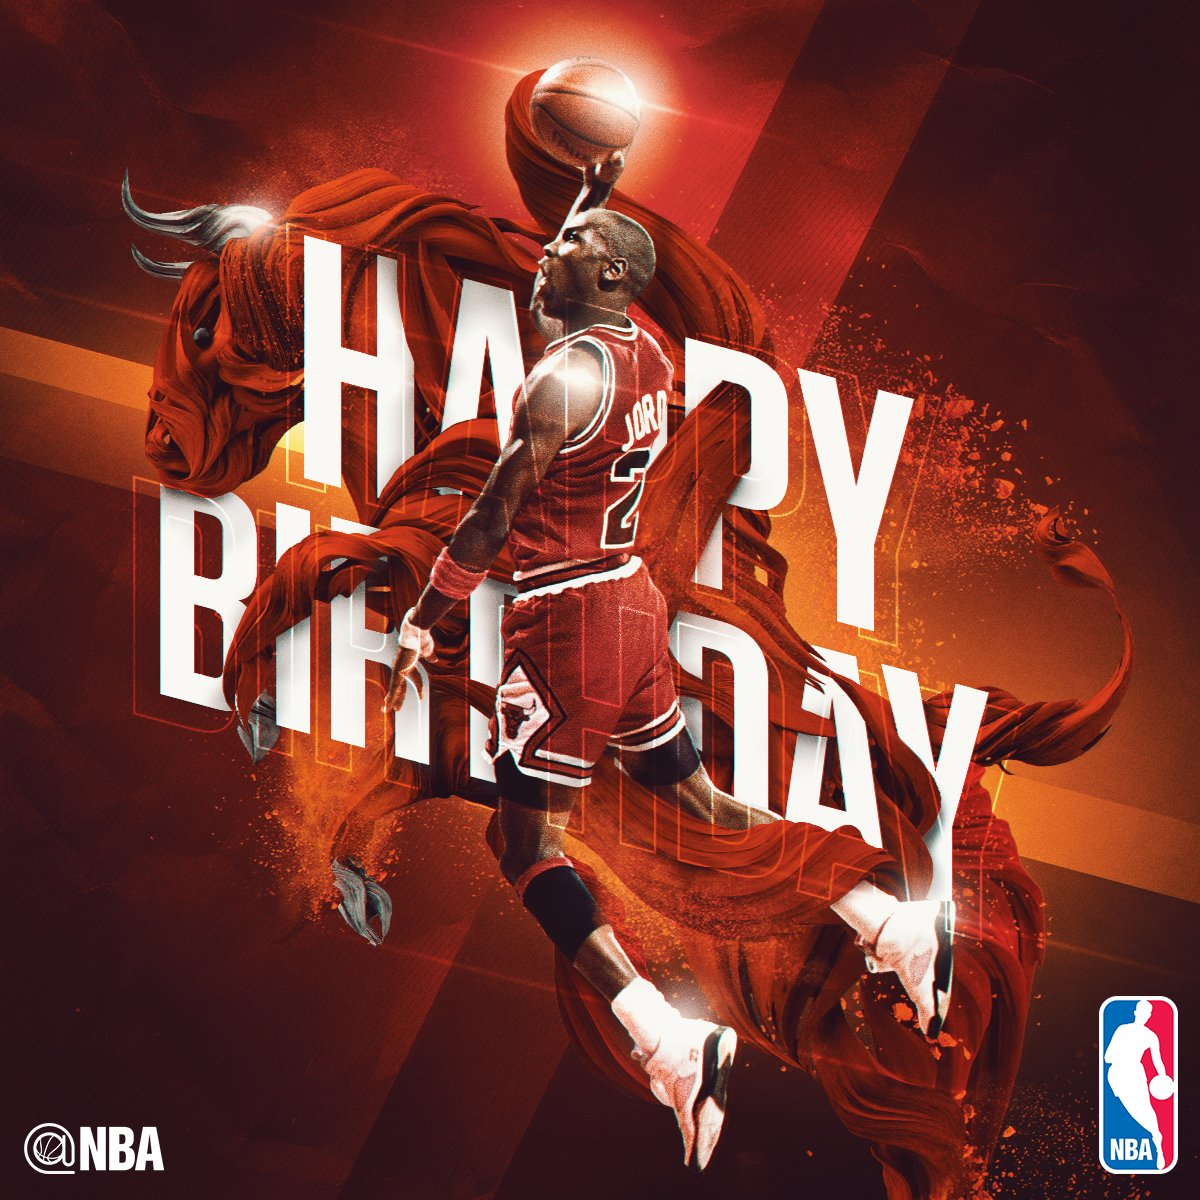 NBA on Twitter Join us in wishing MICHAEL JORDAN a HAPPY 53rd – Michael Jordan Birthday Card